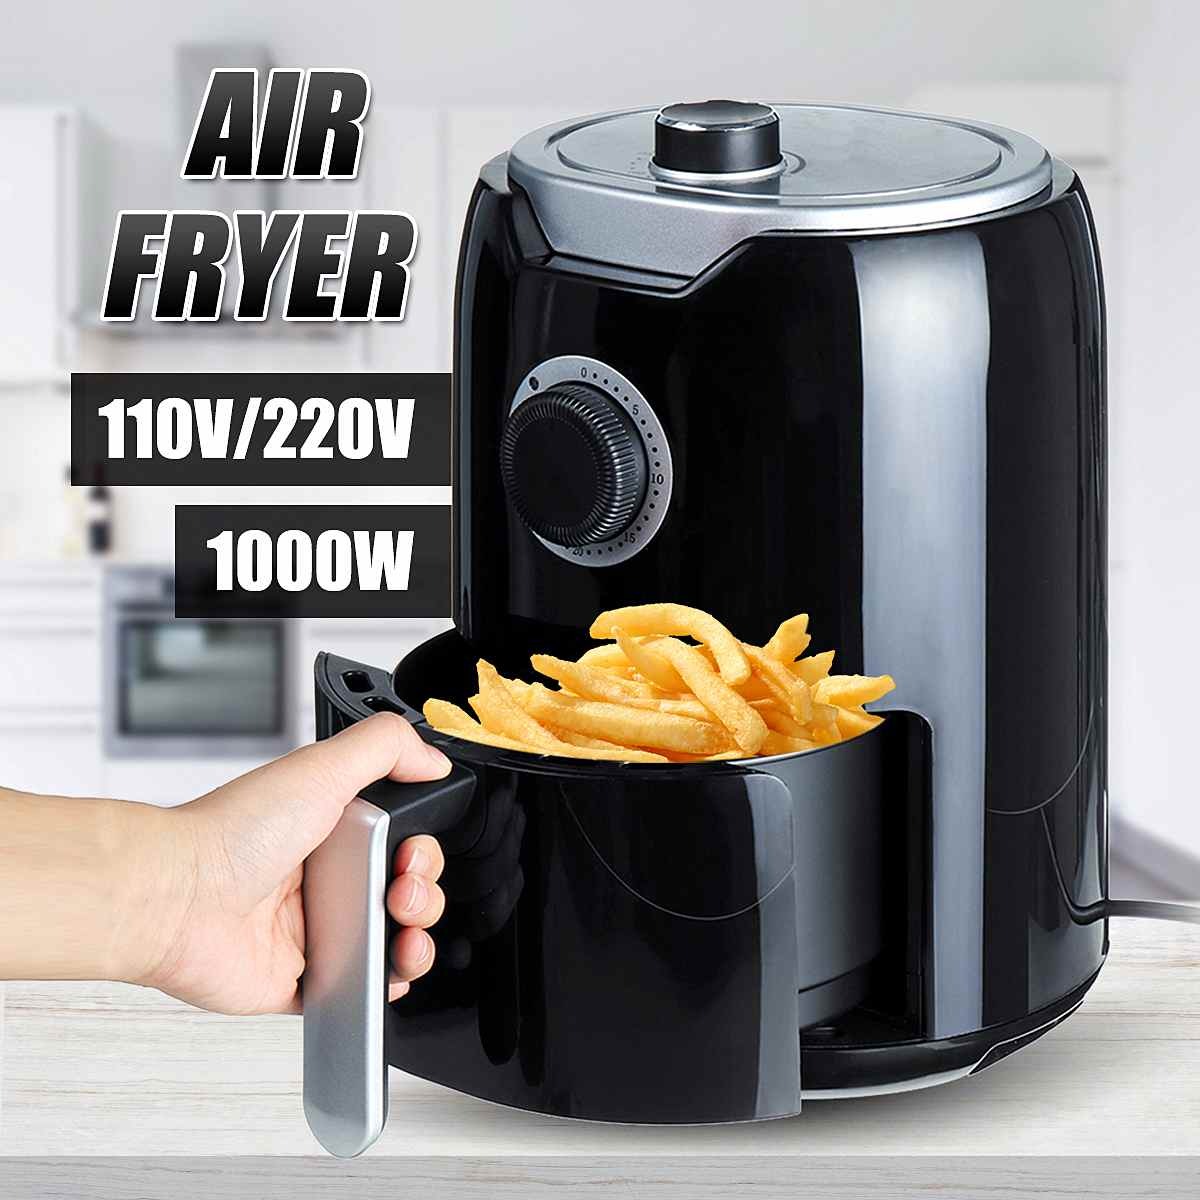 1000W 2L Electric Deep Fryer Air Fryer Timer Temperature Control Power Air Fryer Eletric Household Healthy Kitchen Cooking Tools